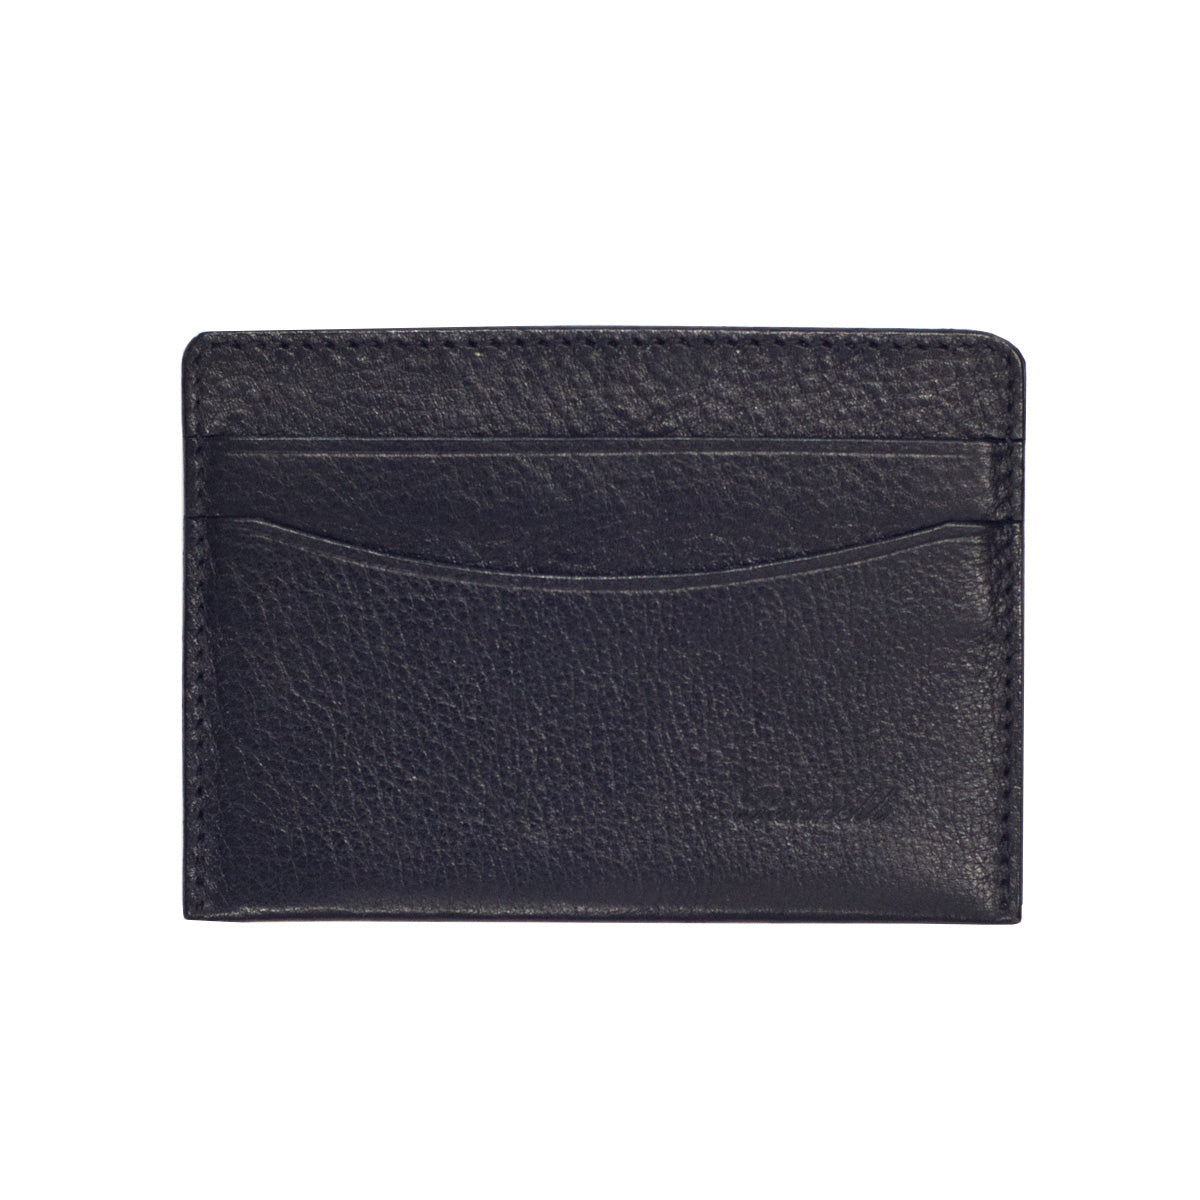 Handmade Wallet in Black Leather